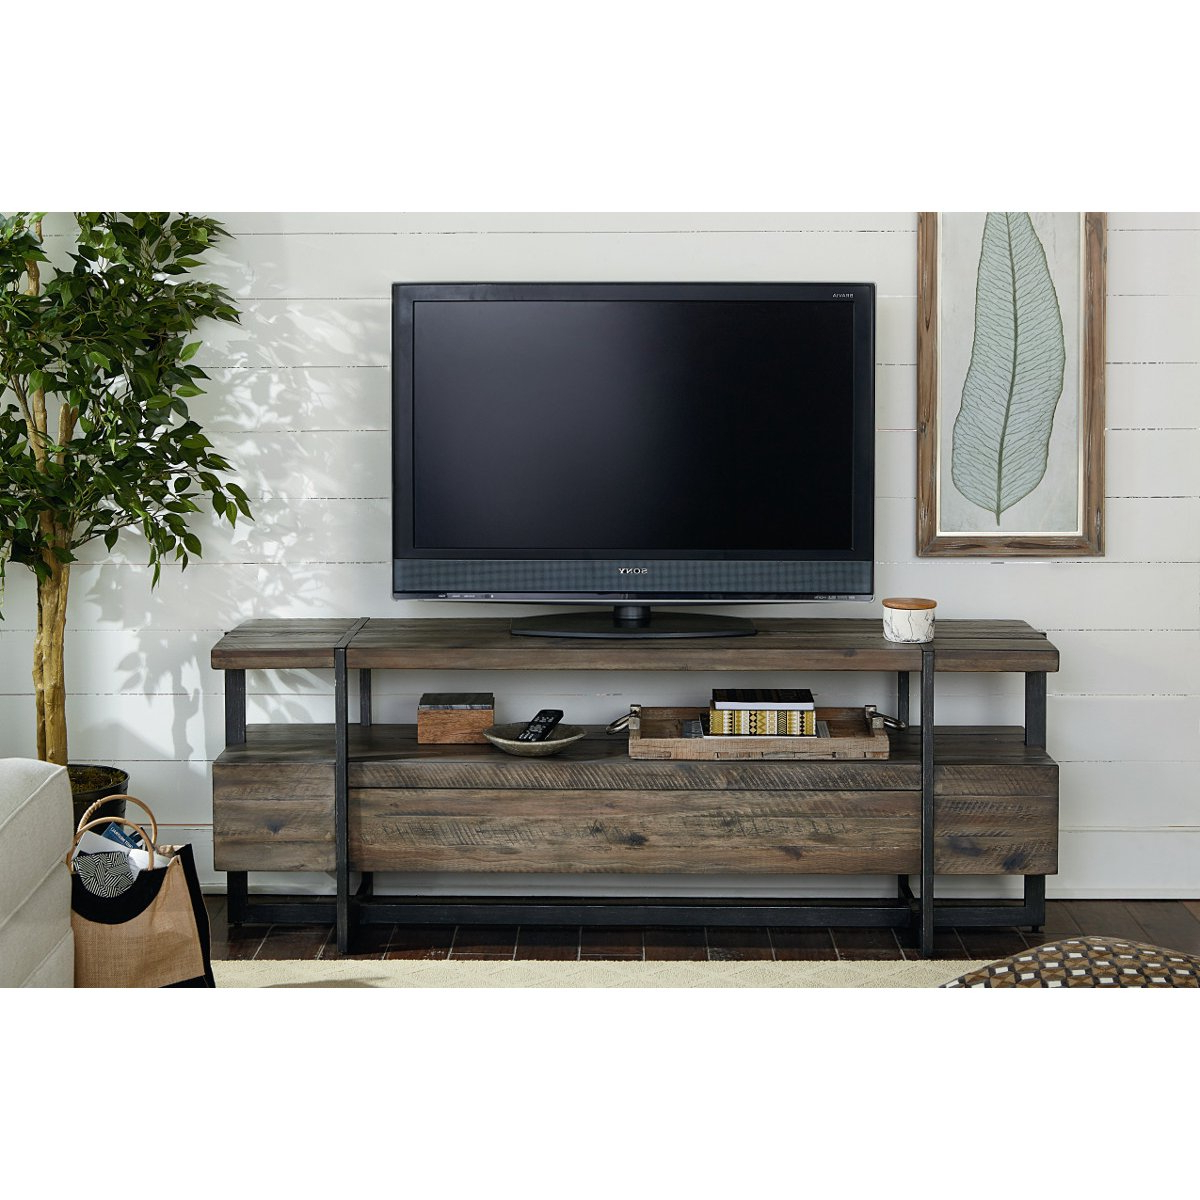 Rustic Wood Tv Cabinets Pertaining To Latest 66 Inch Rustic Brown Tv Stand – Modern Timber (View 13 of 20)